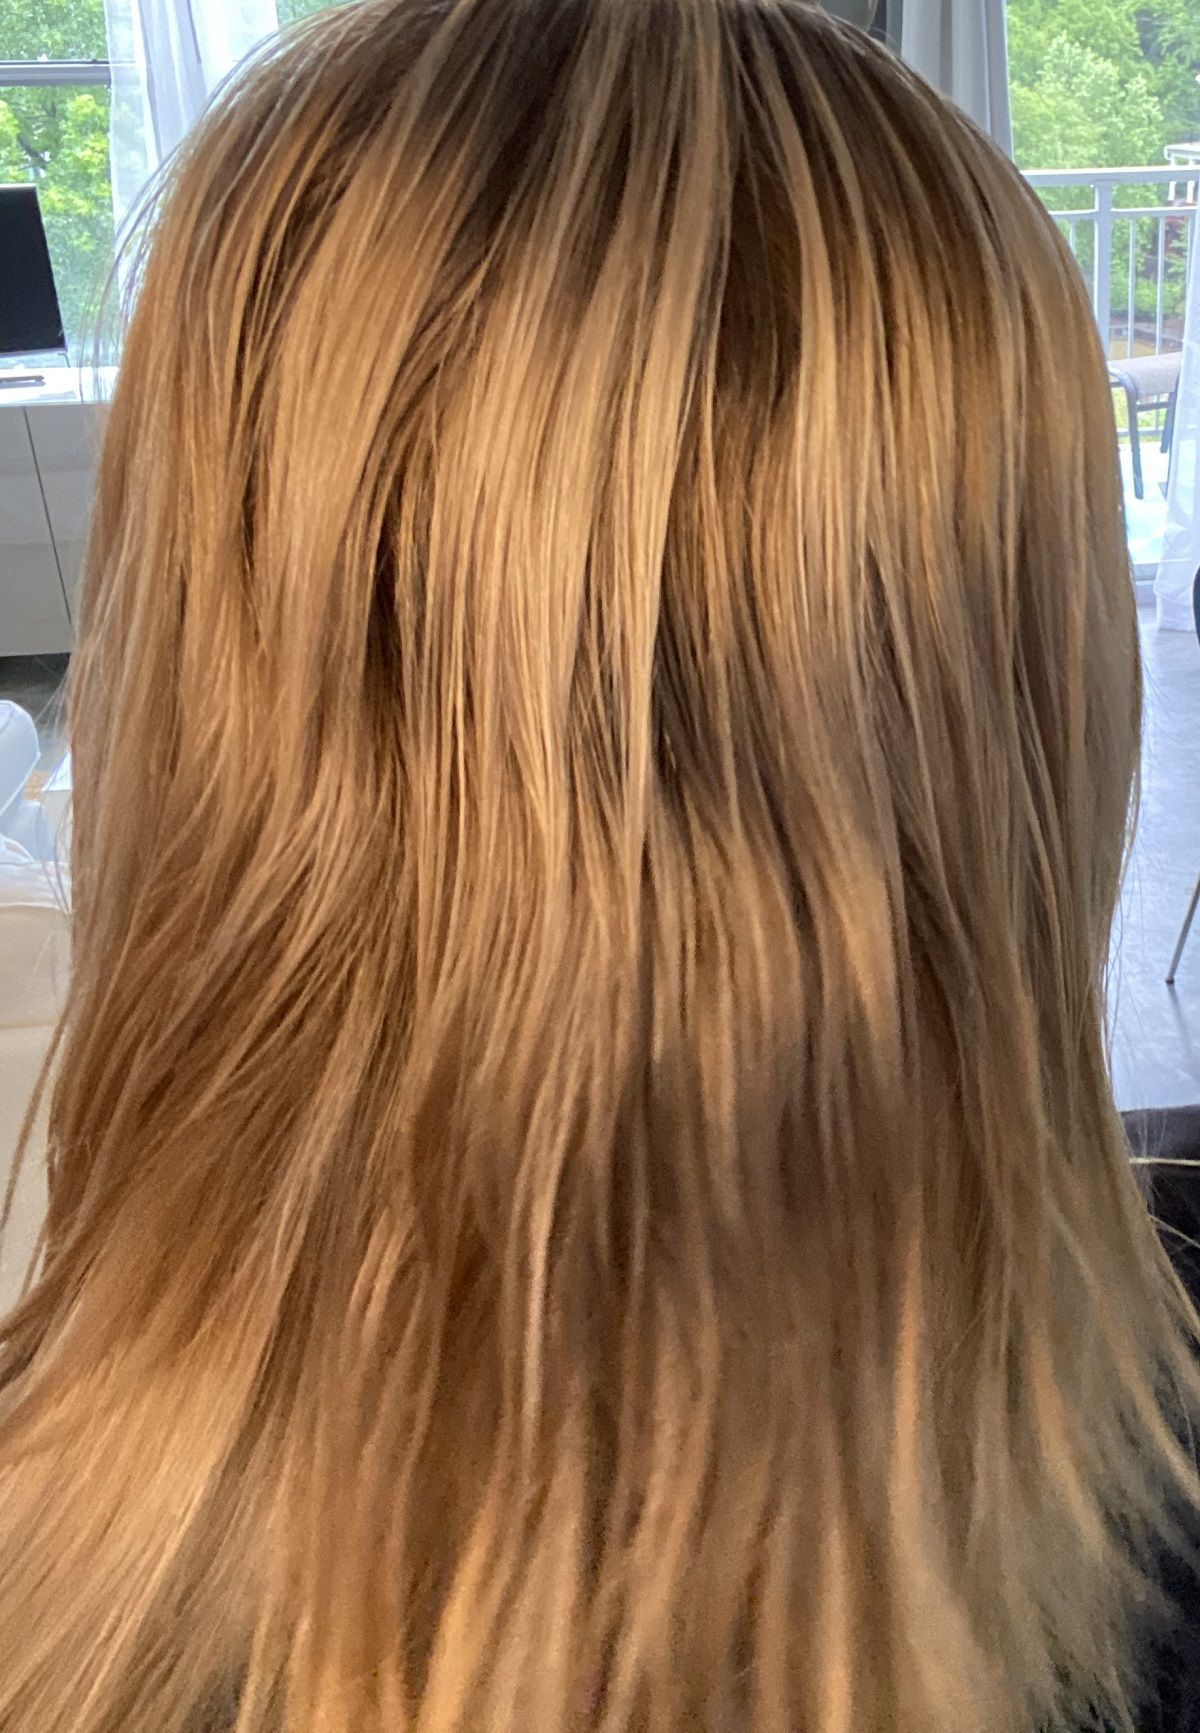 See Before And After Pictures Of Wella T18 Toner In 2020 Wella T18 T18 Toner Wella Toner T18